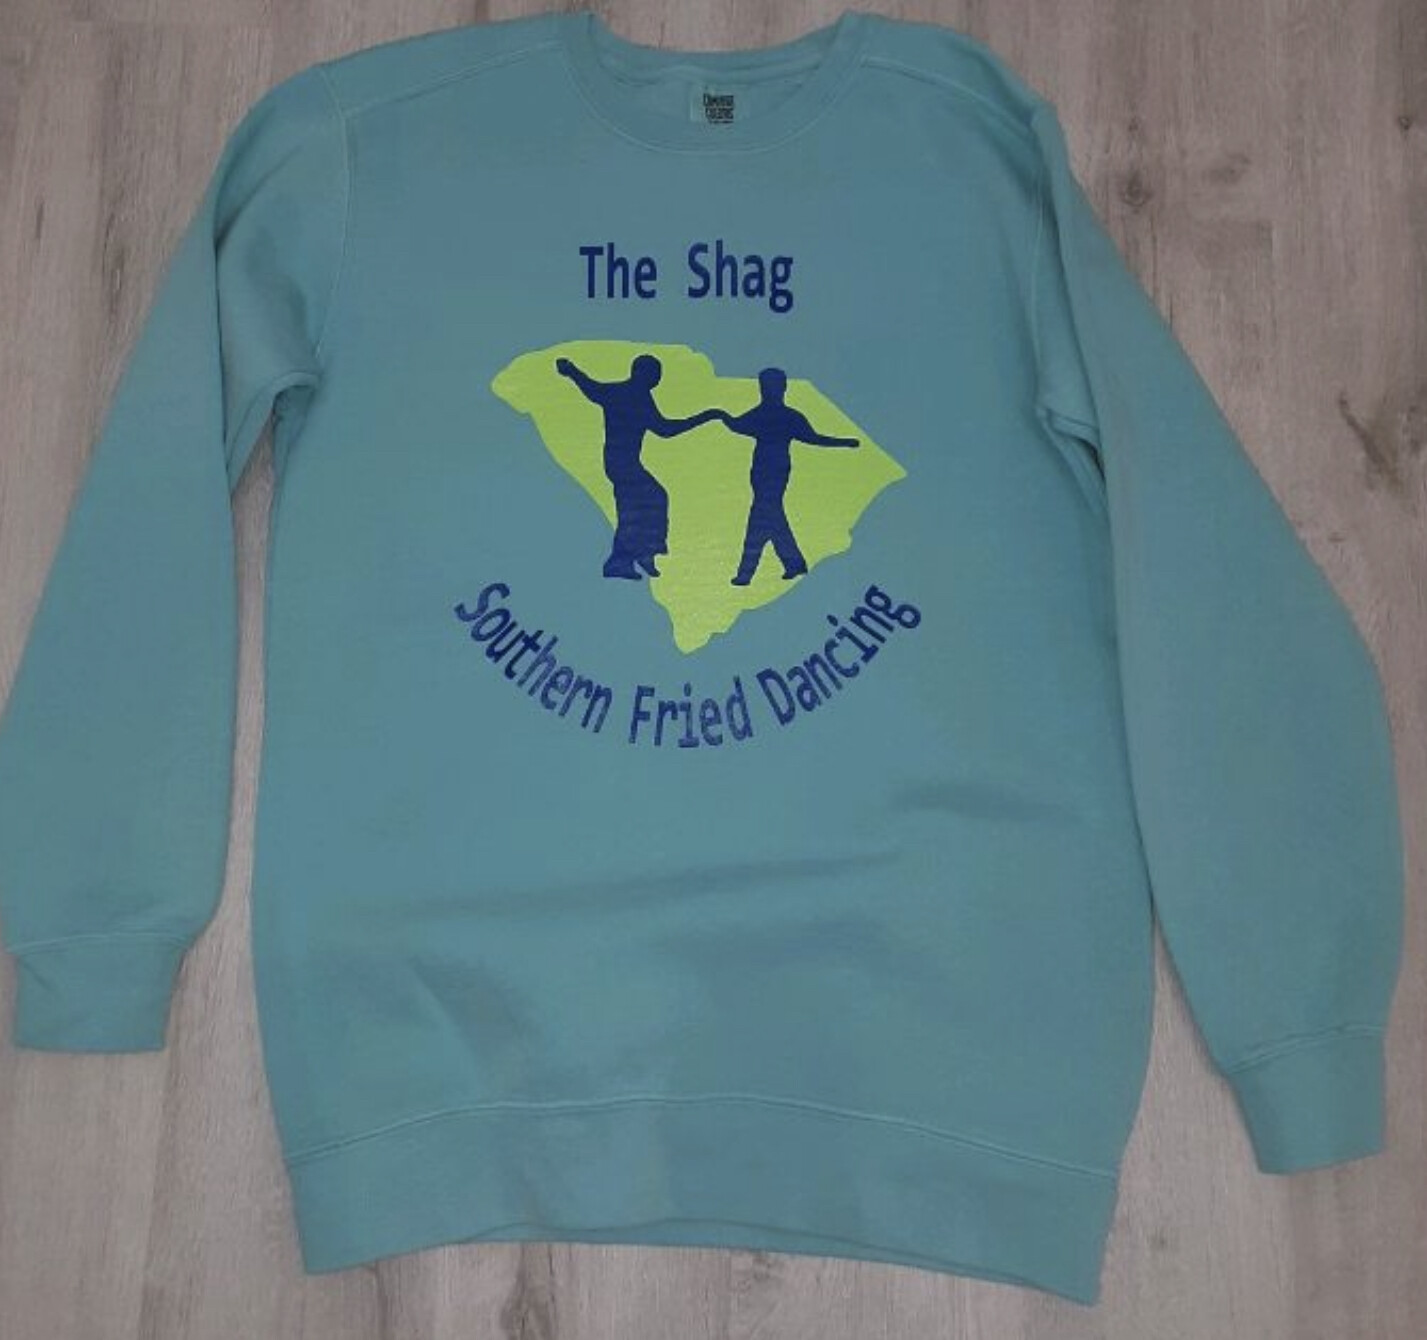 The Shag- Southern Fried Dancing Crewneck